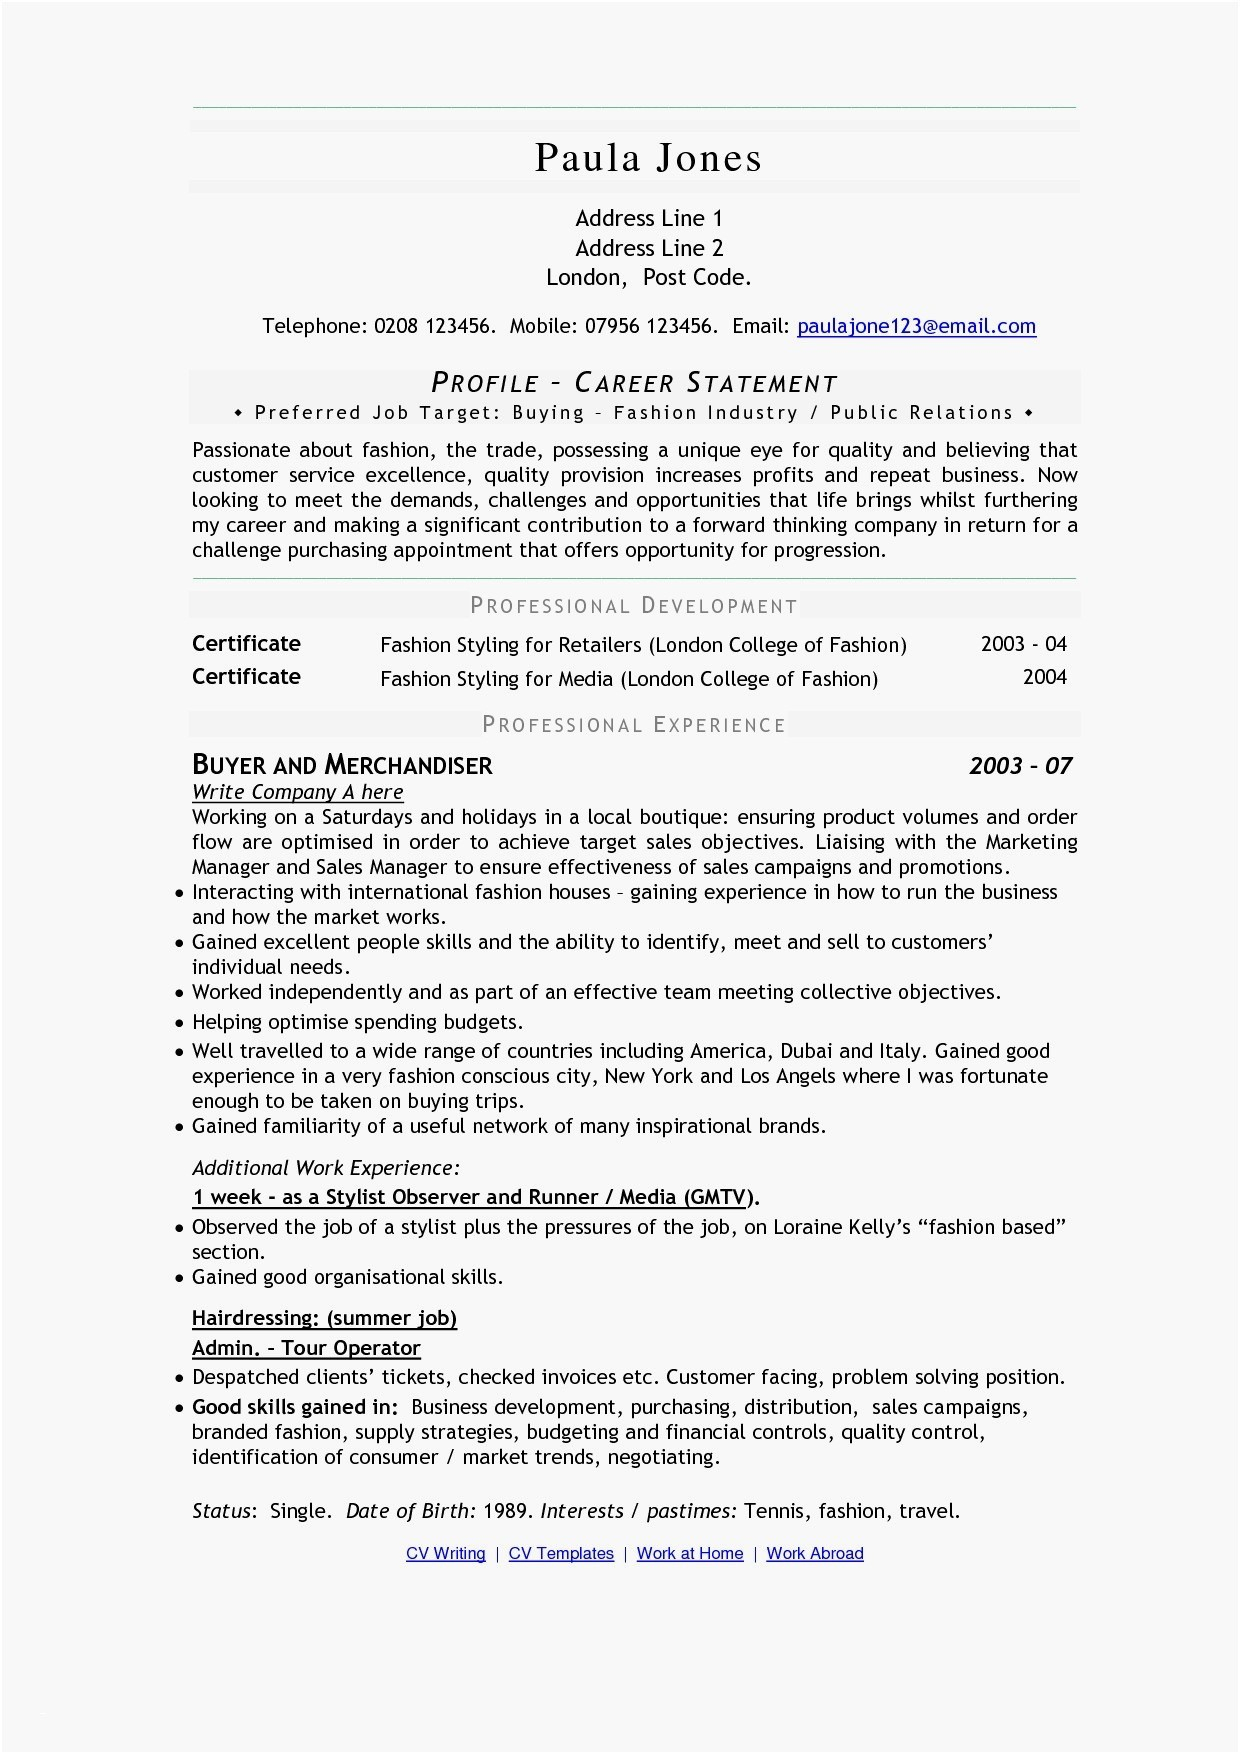 Hair Stylist Resume - Pay Lovely Resume for A Hair Stylist Beautiful Resume for